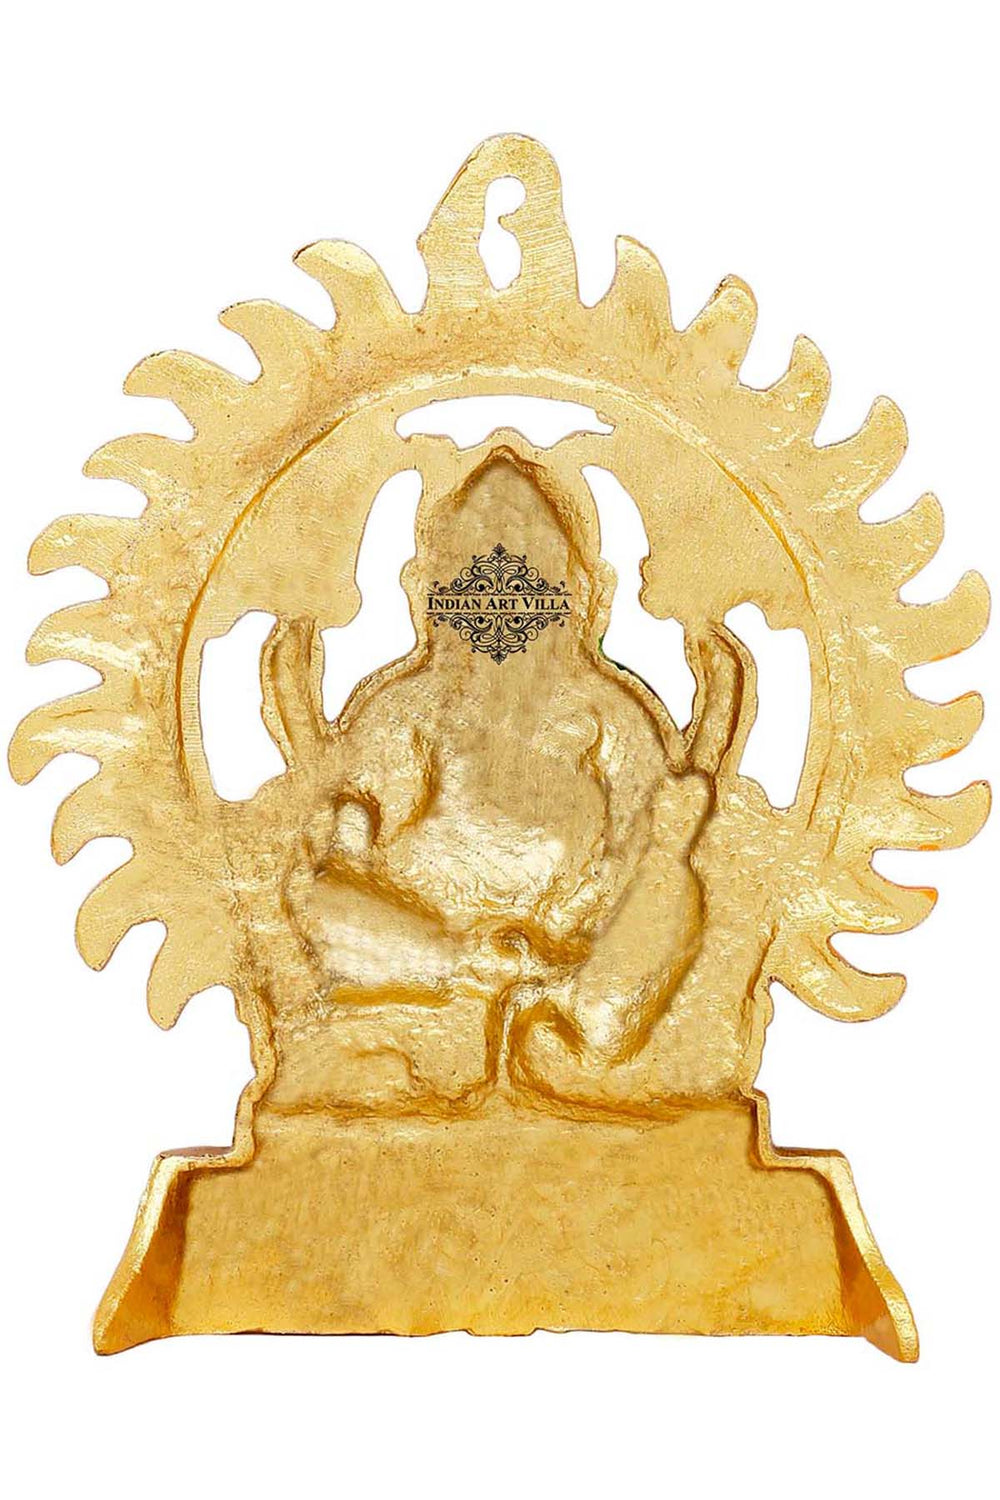 "Aluminium Lord Ganesh Ji, Wall Hanging, Spiritual Idol, Showpiece, Height :- 8.6"" Inch"